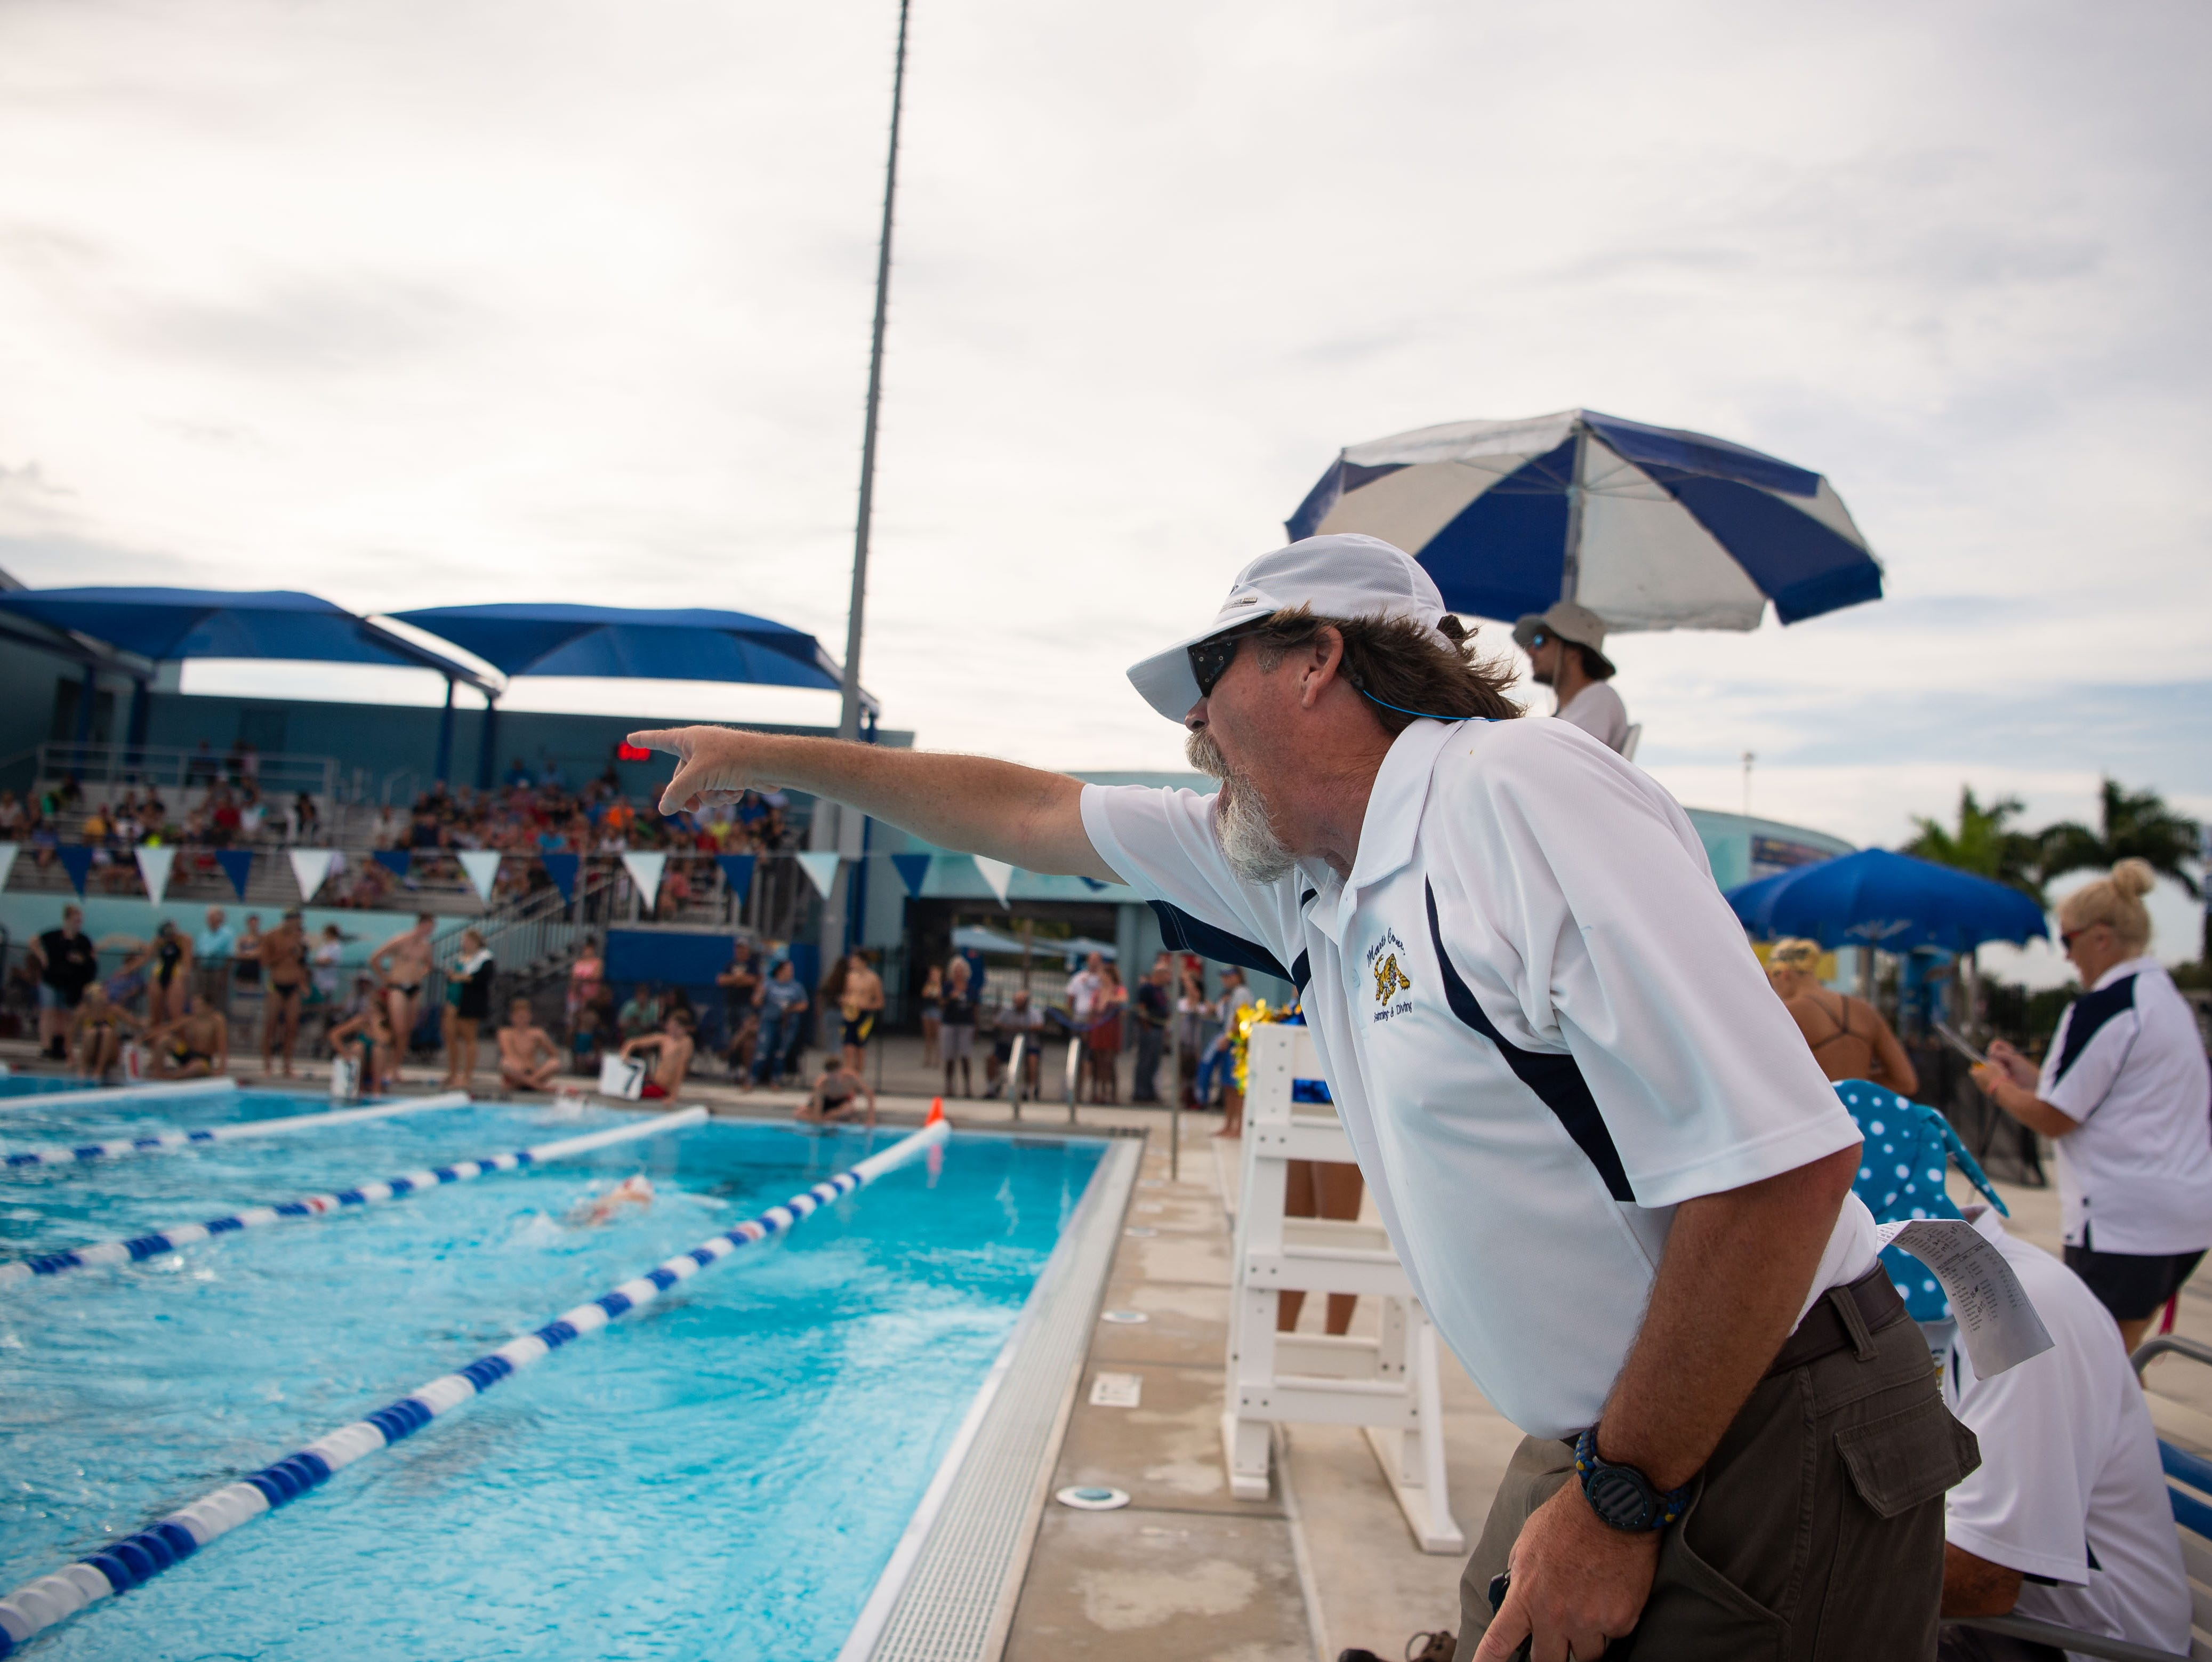 Martin County head coach Job McCombs motivates his simmers as schools compete at the Martin County Championships high school swim and dive meet Thursday, Oct. 11, 2018, at Sailfish Splash in Stuart.